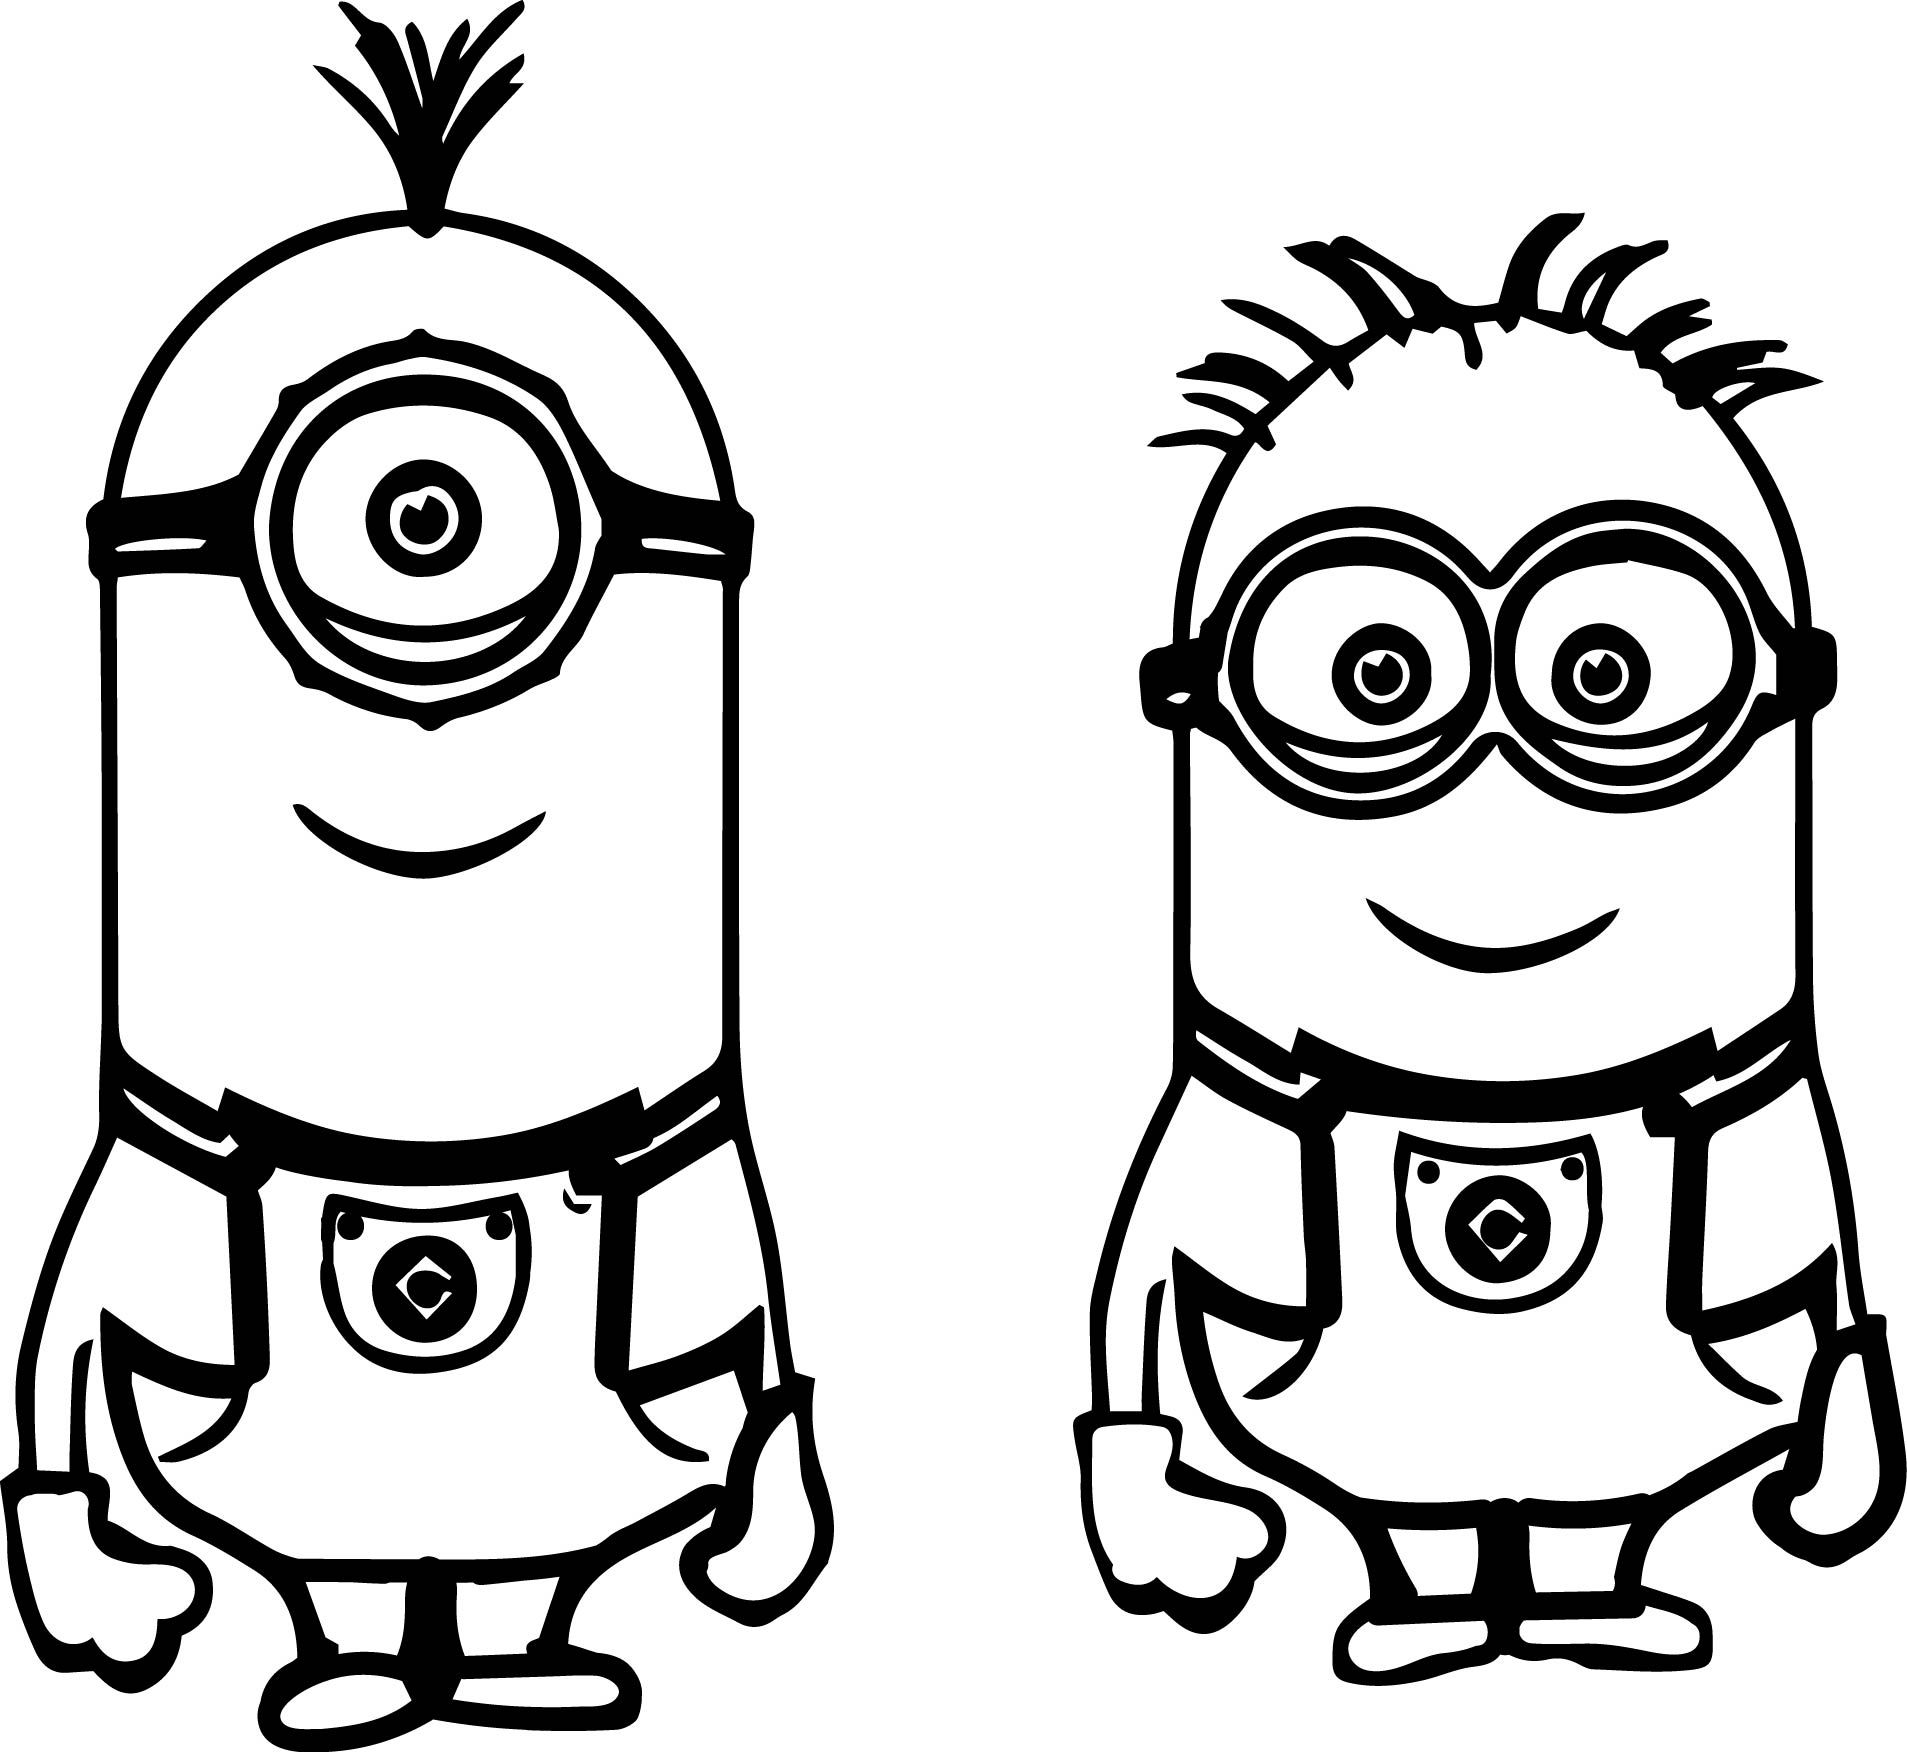 Minion Coloring Pages Printable For Kids Minions Coloring Pages Minion Coloring Pages Cute Coloring Pages